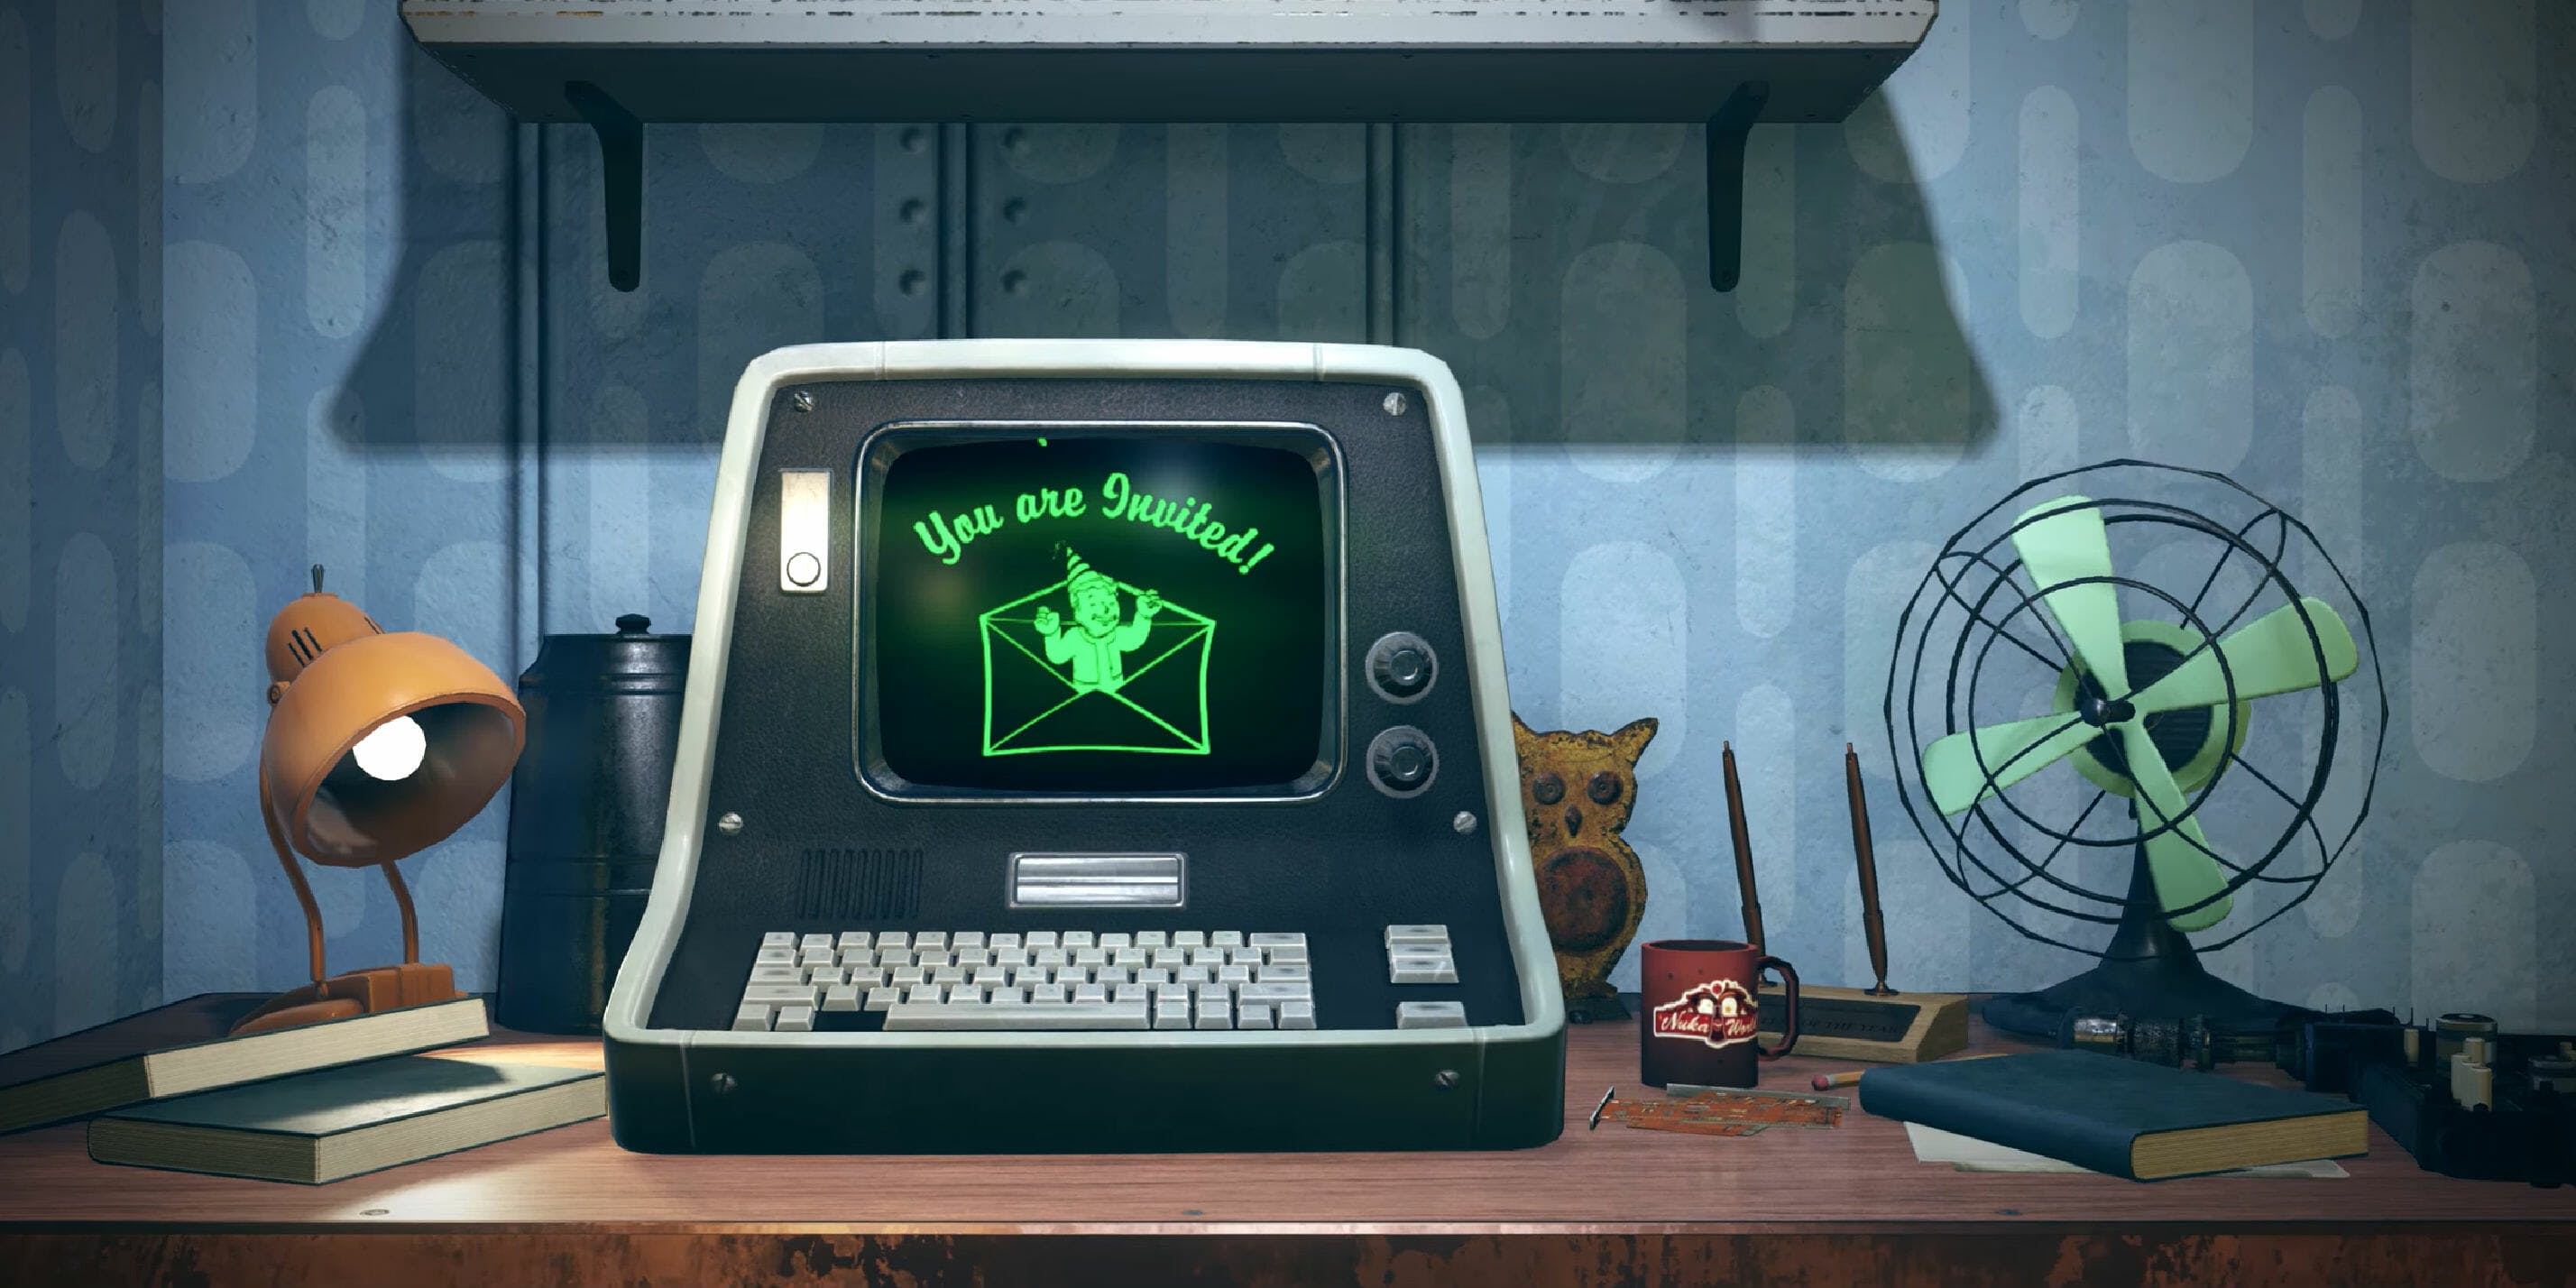 Fallout 76 trailer : Computer reading 'You are invited'